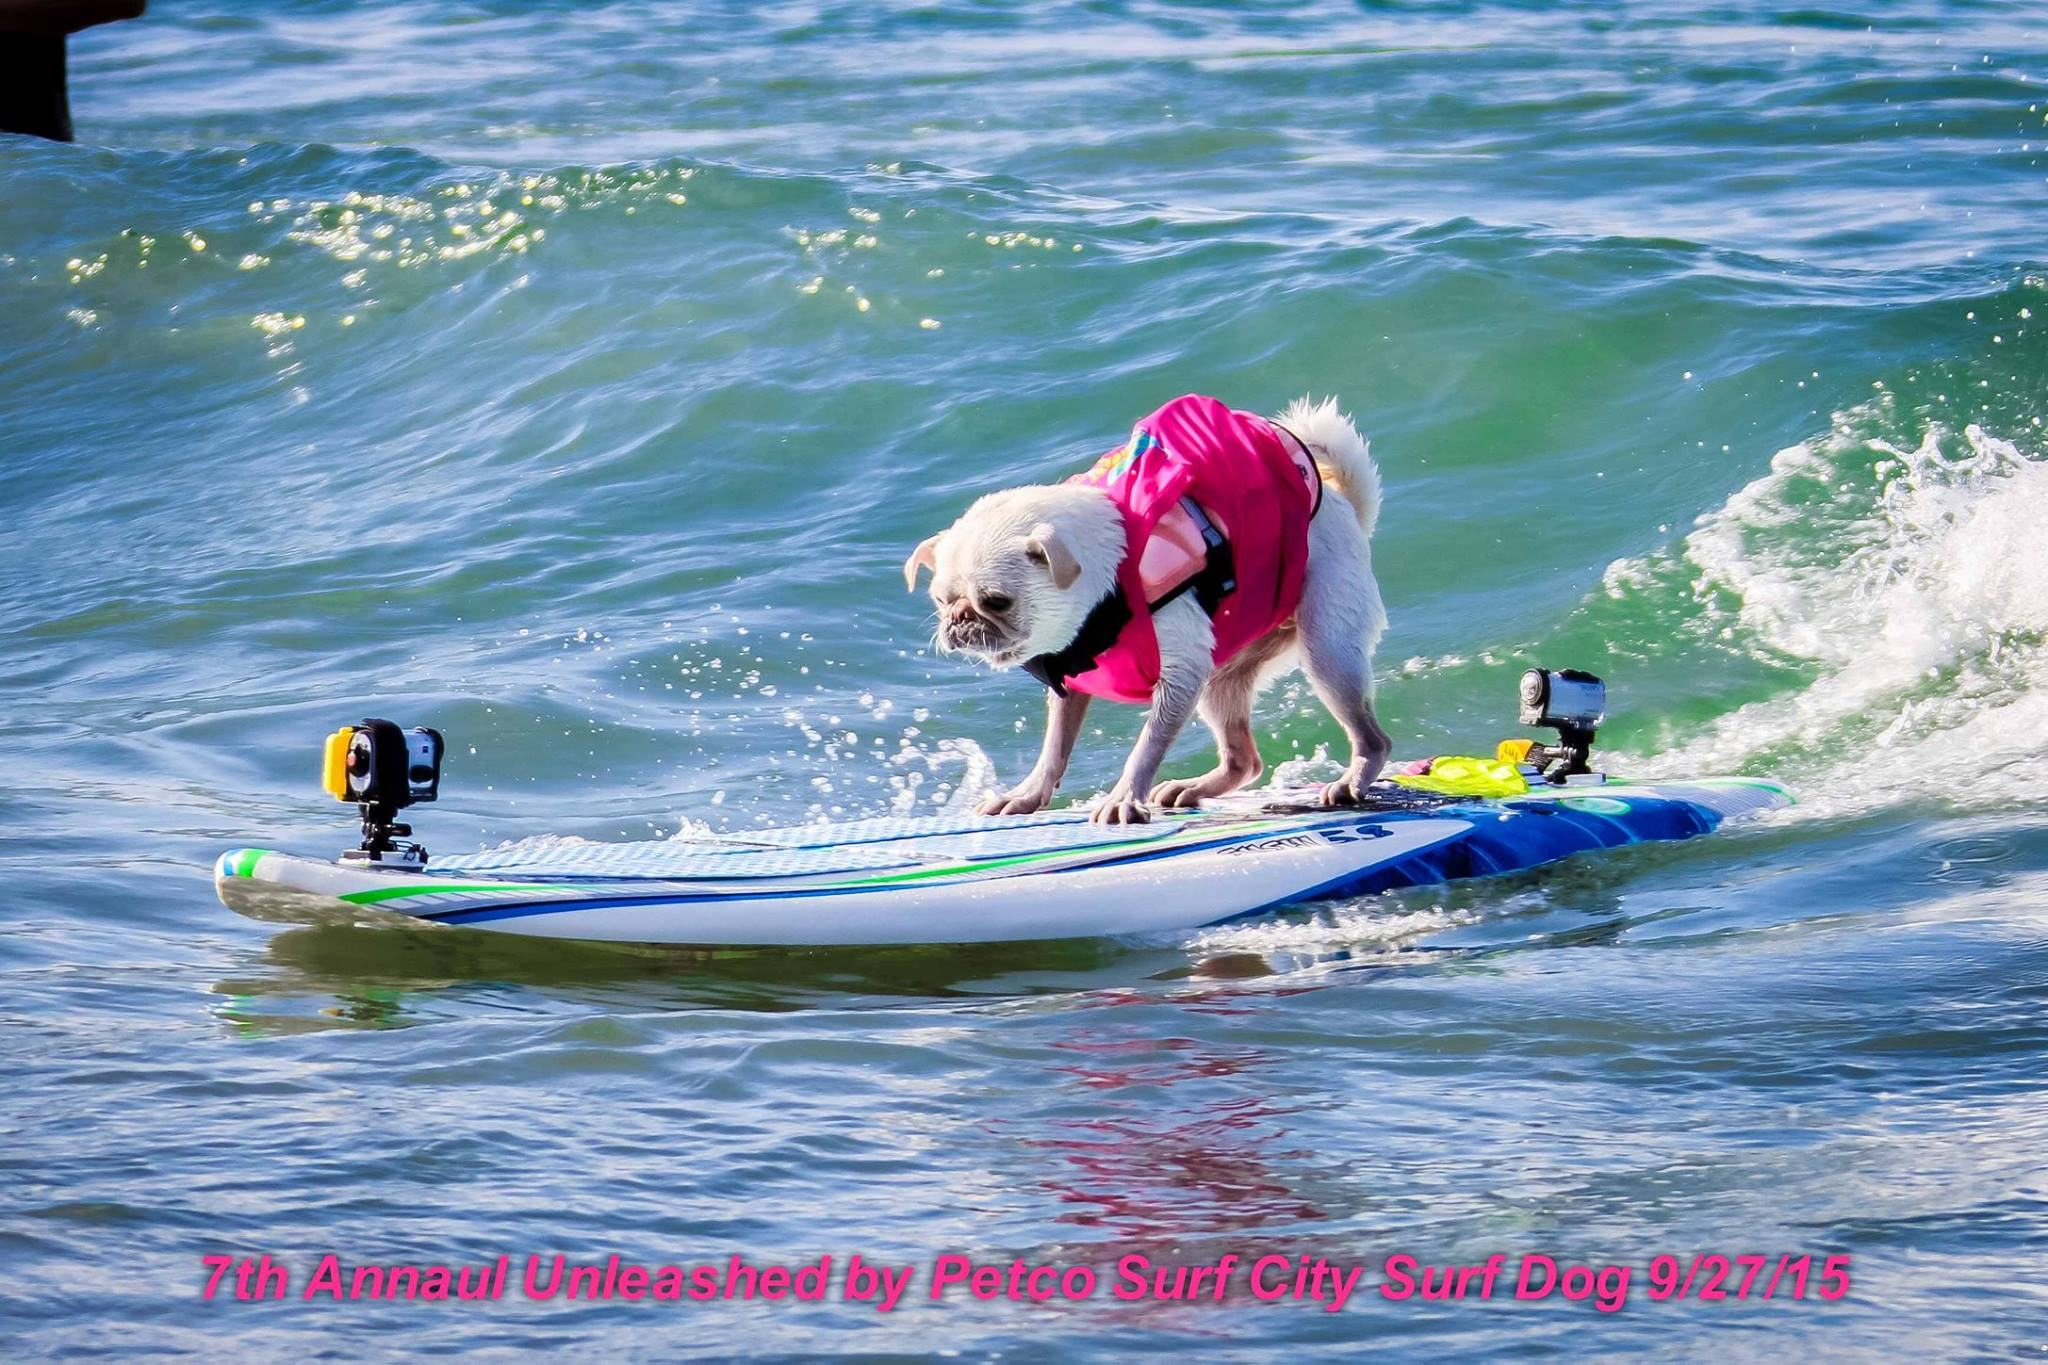 2015 HB Surf City Surf Dog